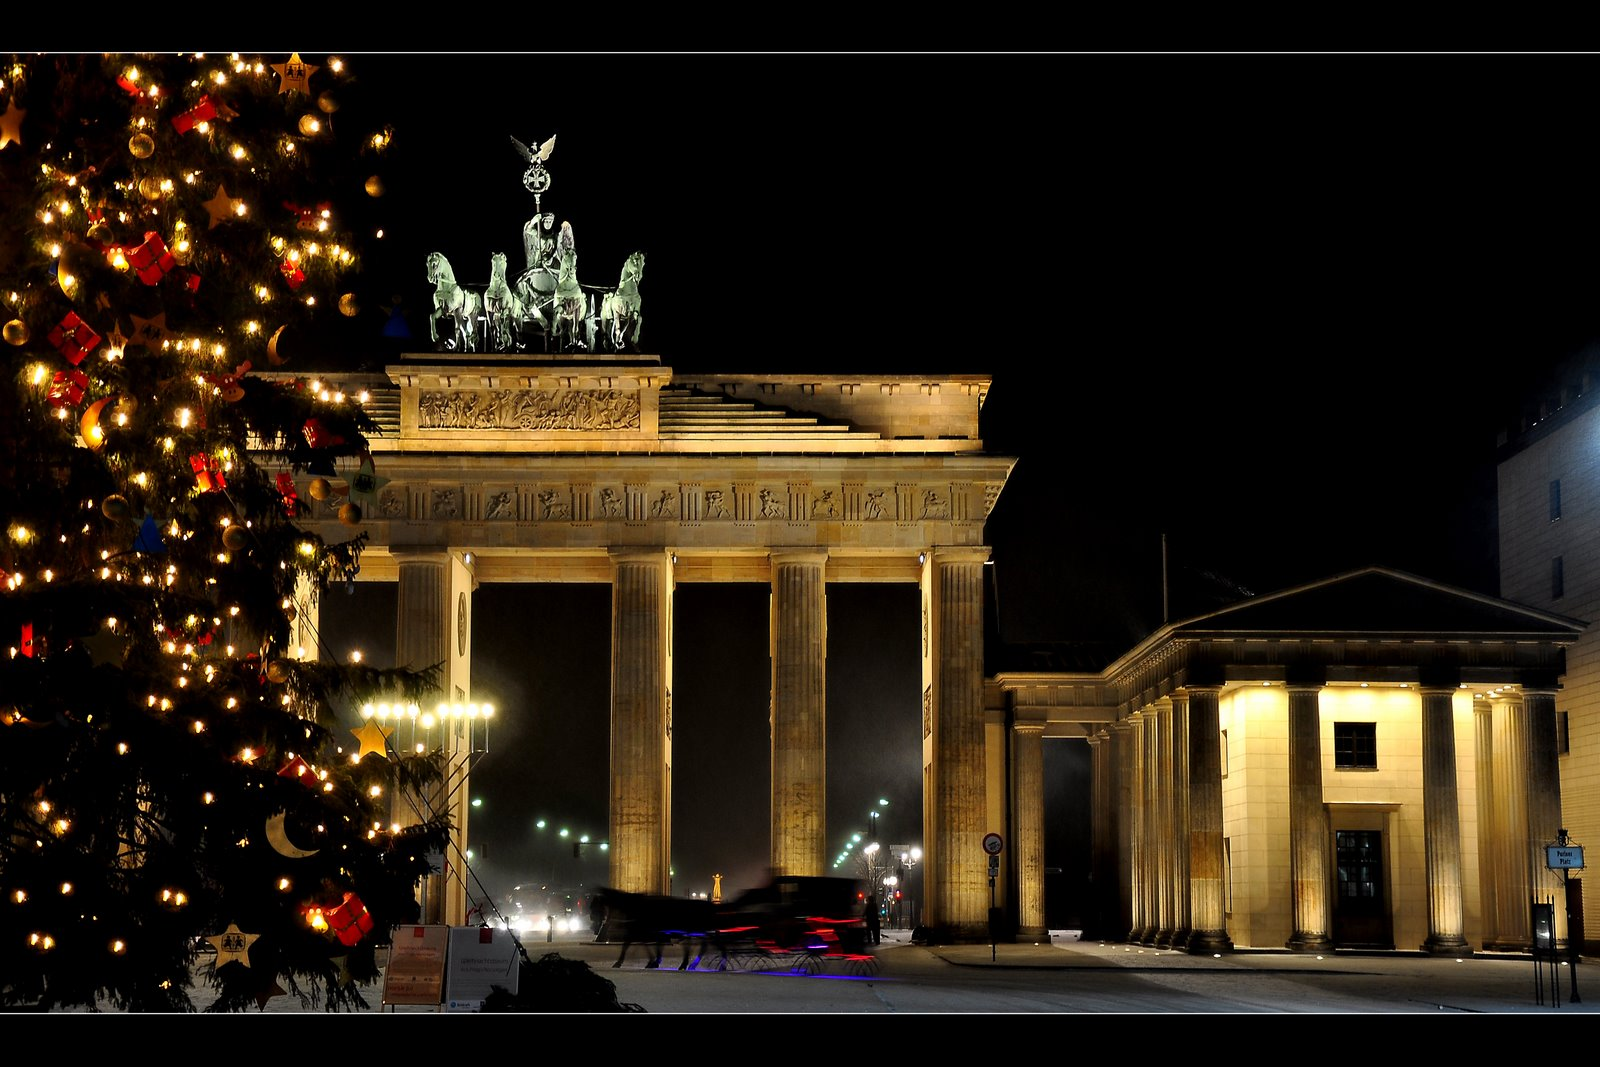 frohe weihnachten berlin foto bild architektur architektur bei nacht abends nachts. Black Bedroom Furniture Sets. Home Design Ideas